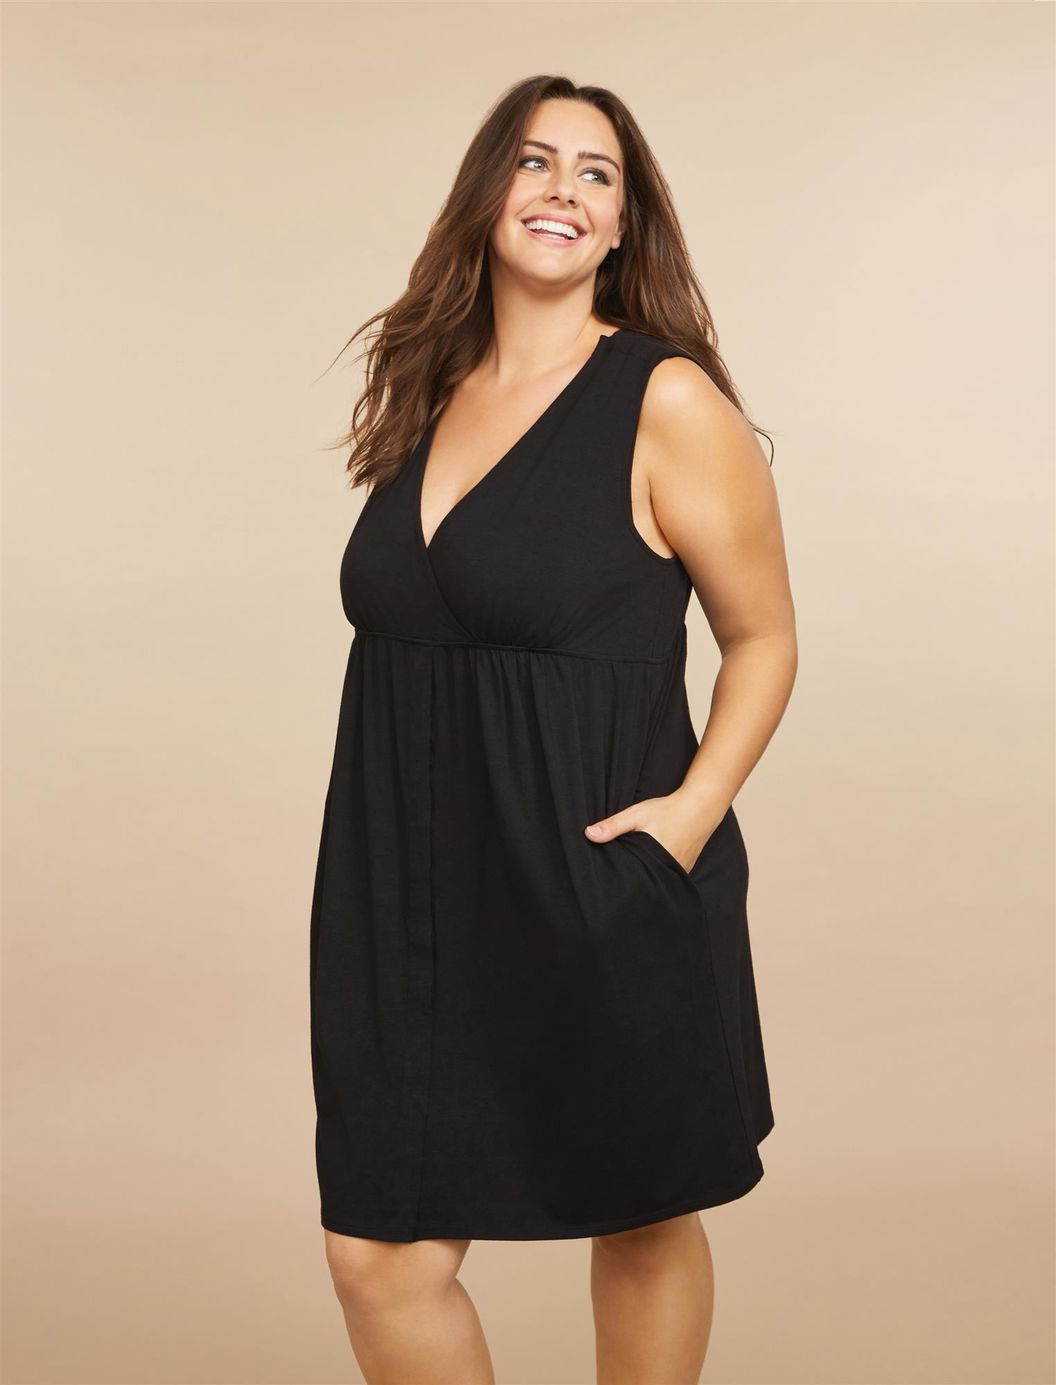 Plus Size 3 In 1 Labor, Delivery And Nursing Gown